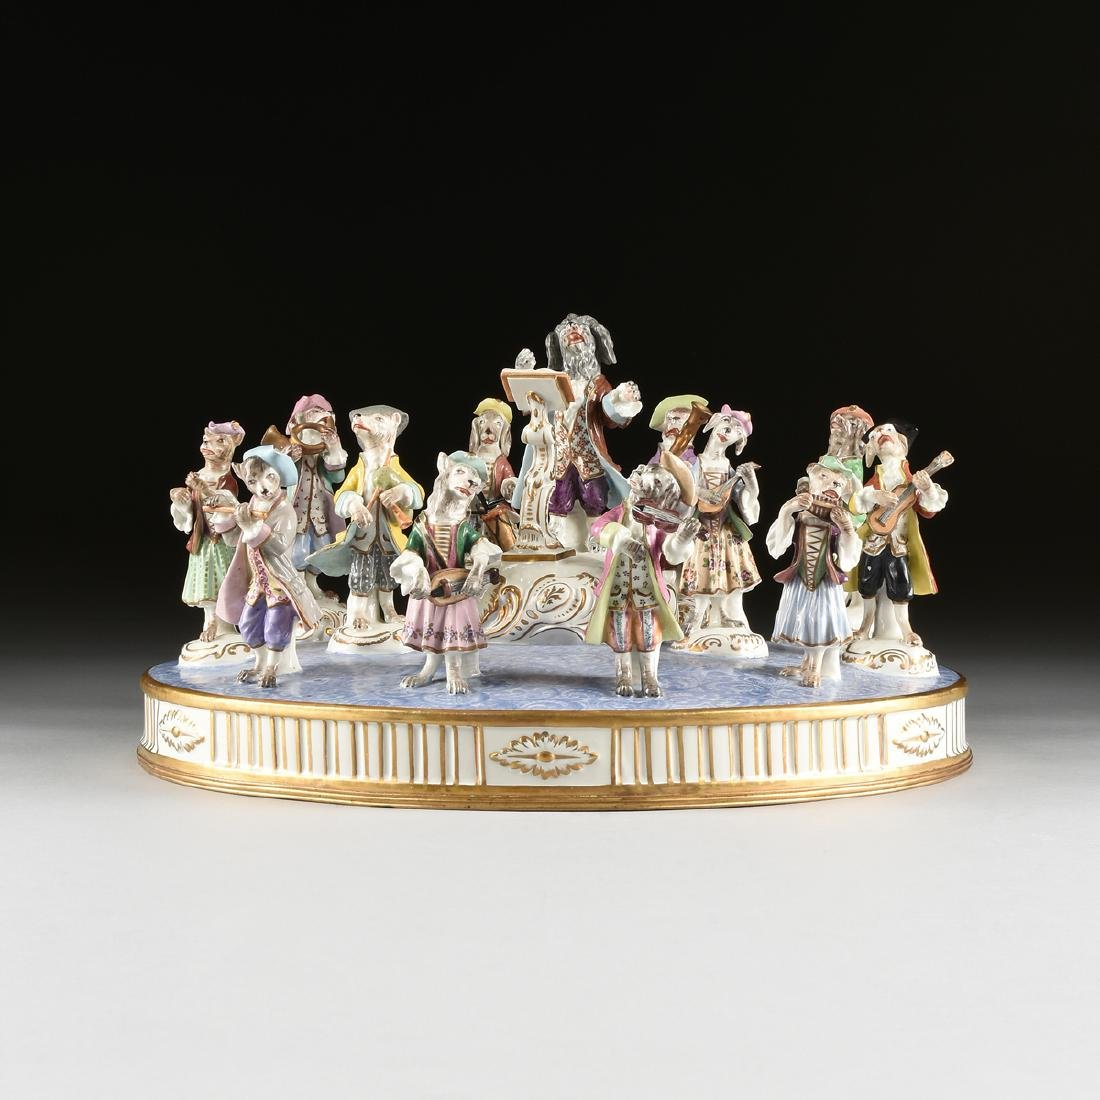 A LARGE FRENCH PAINTED PORCELAIN FIGURAL GROUP OF THE